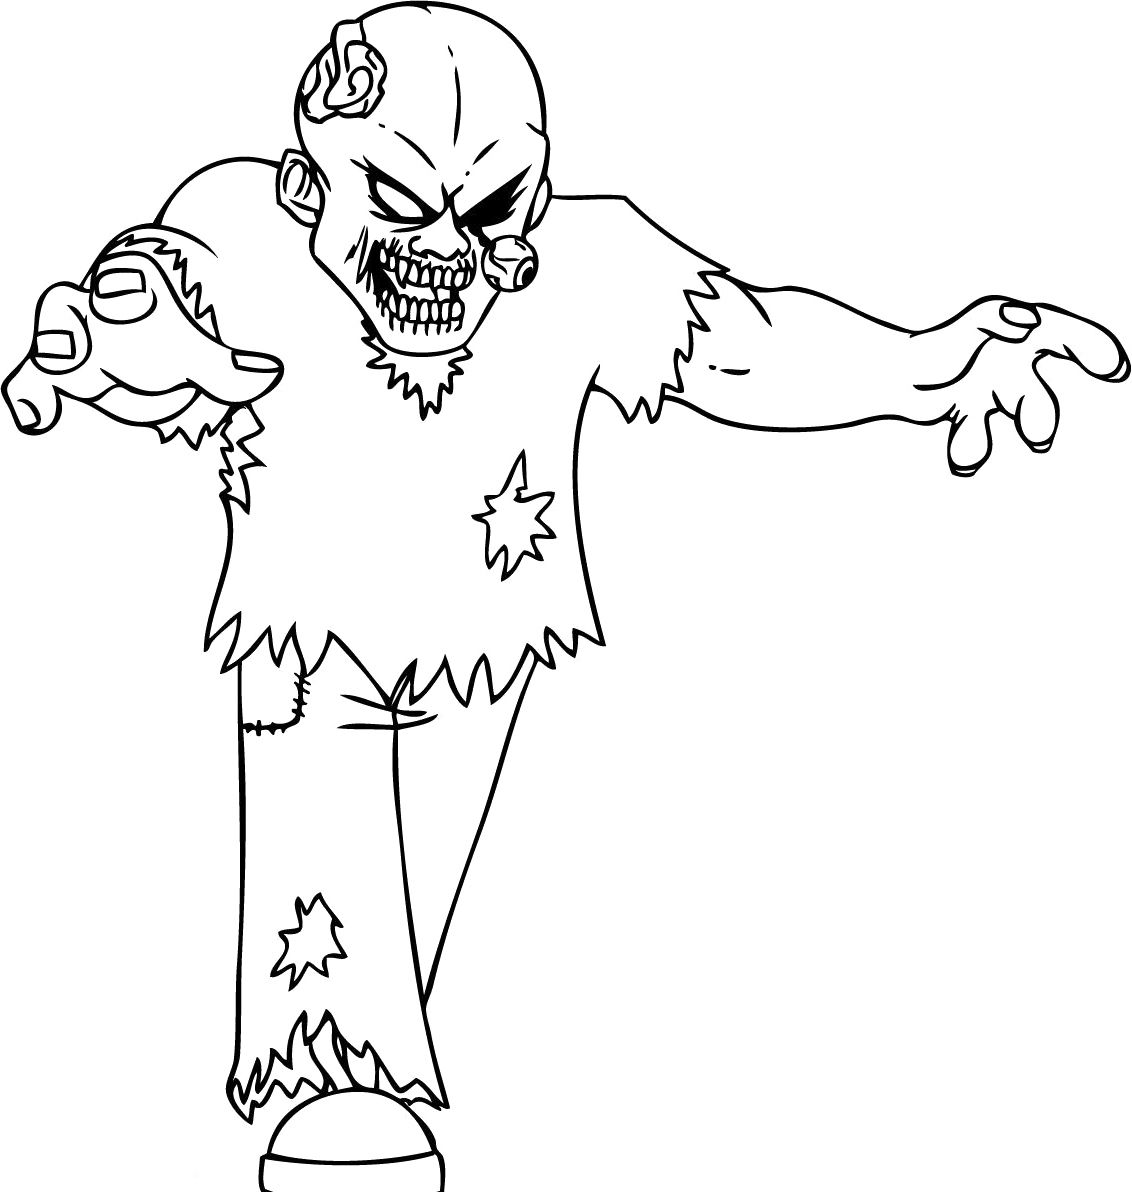 Disney Zombies Coloring Disney Channel Zombies Coloring Pages Disney Zombies Color Disney Coloring Pages Halloween Coloring Pages Halloween Coloring Pictures